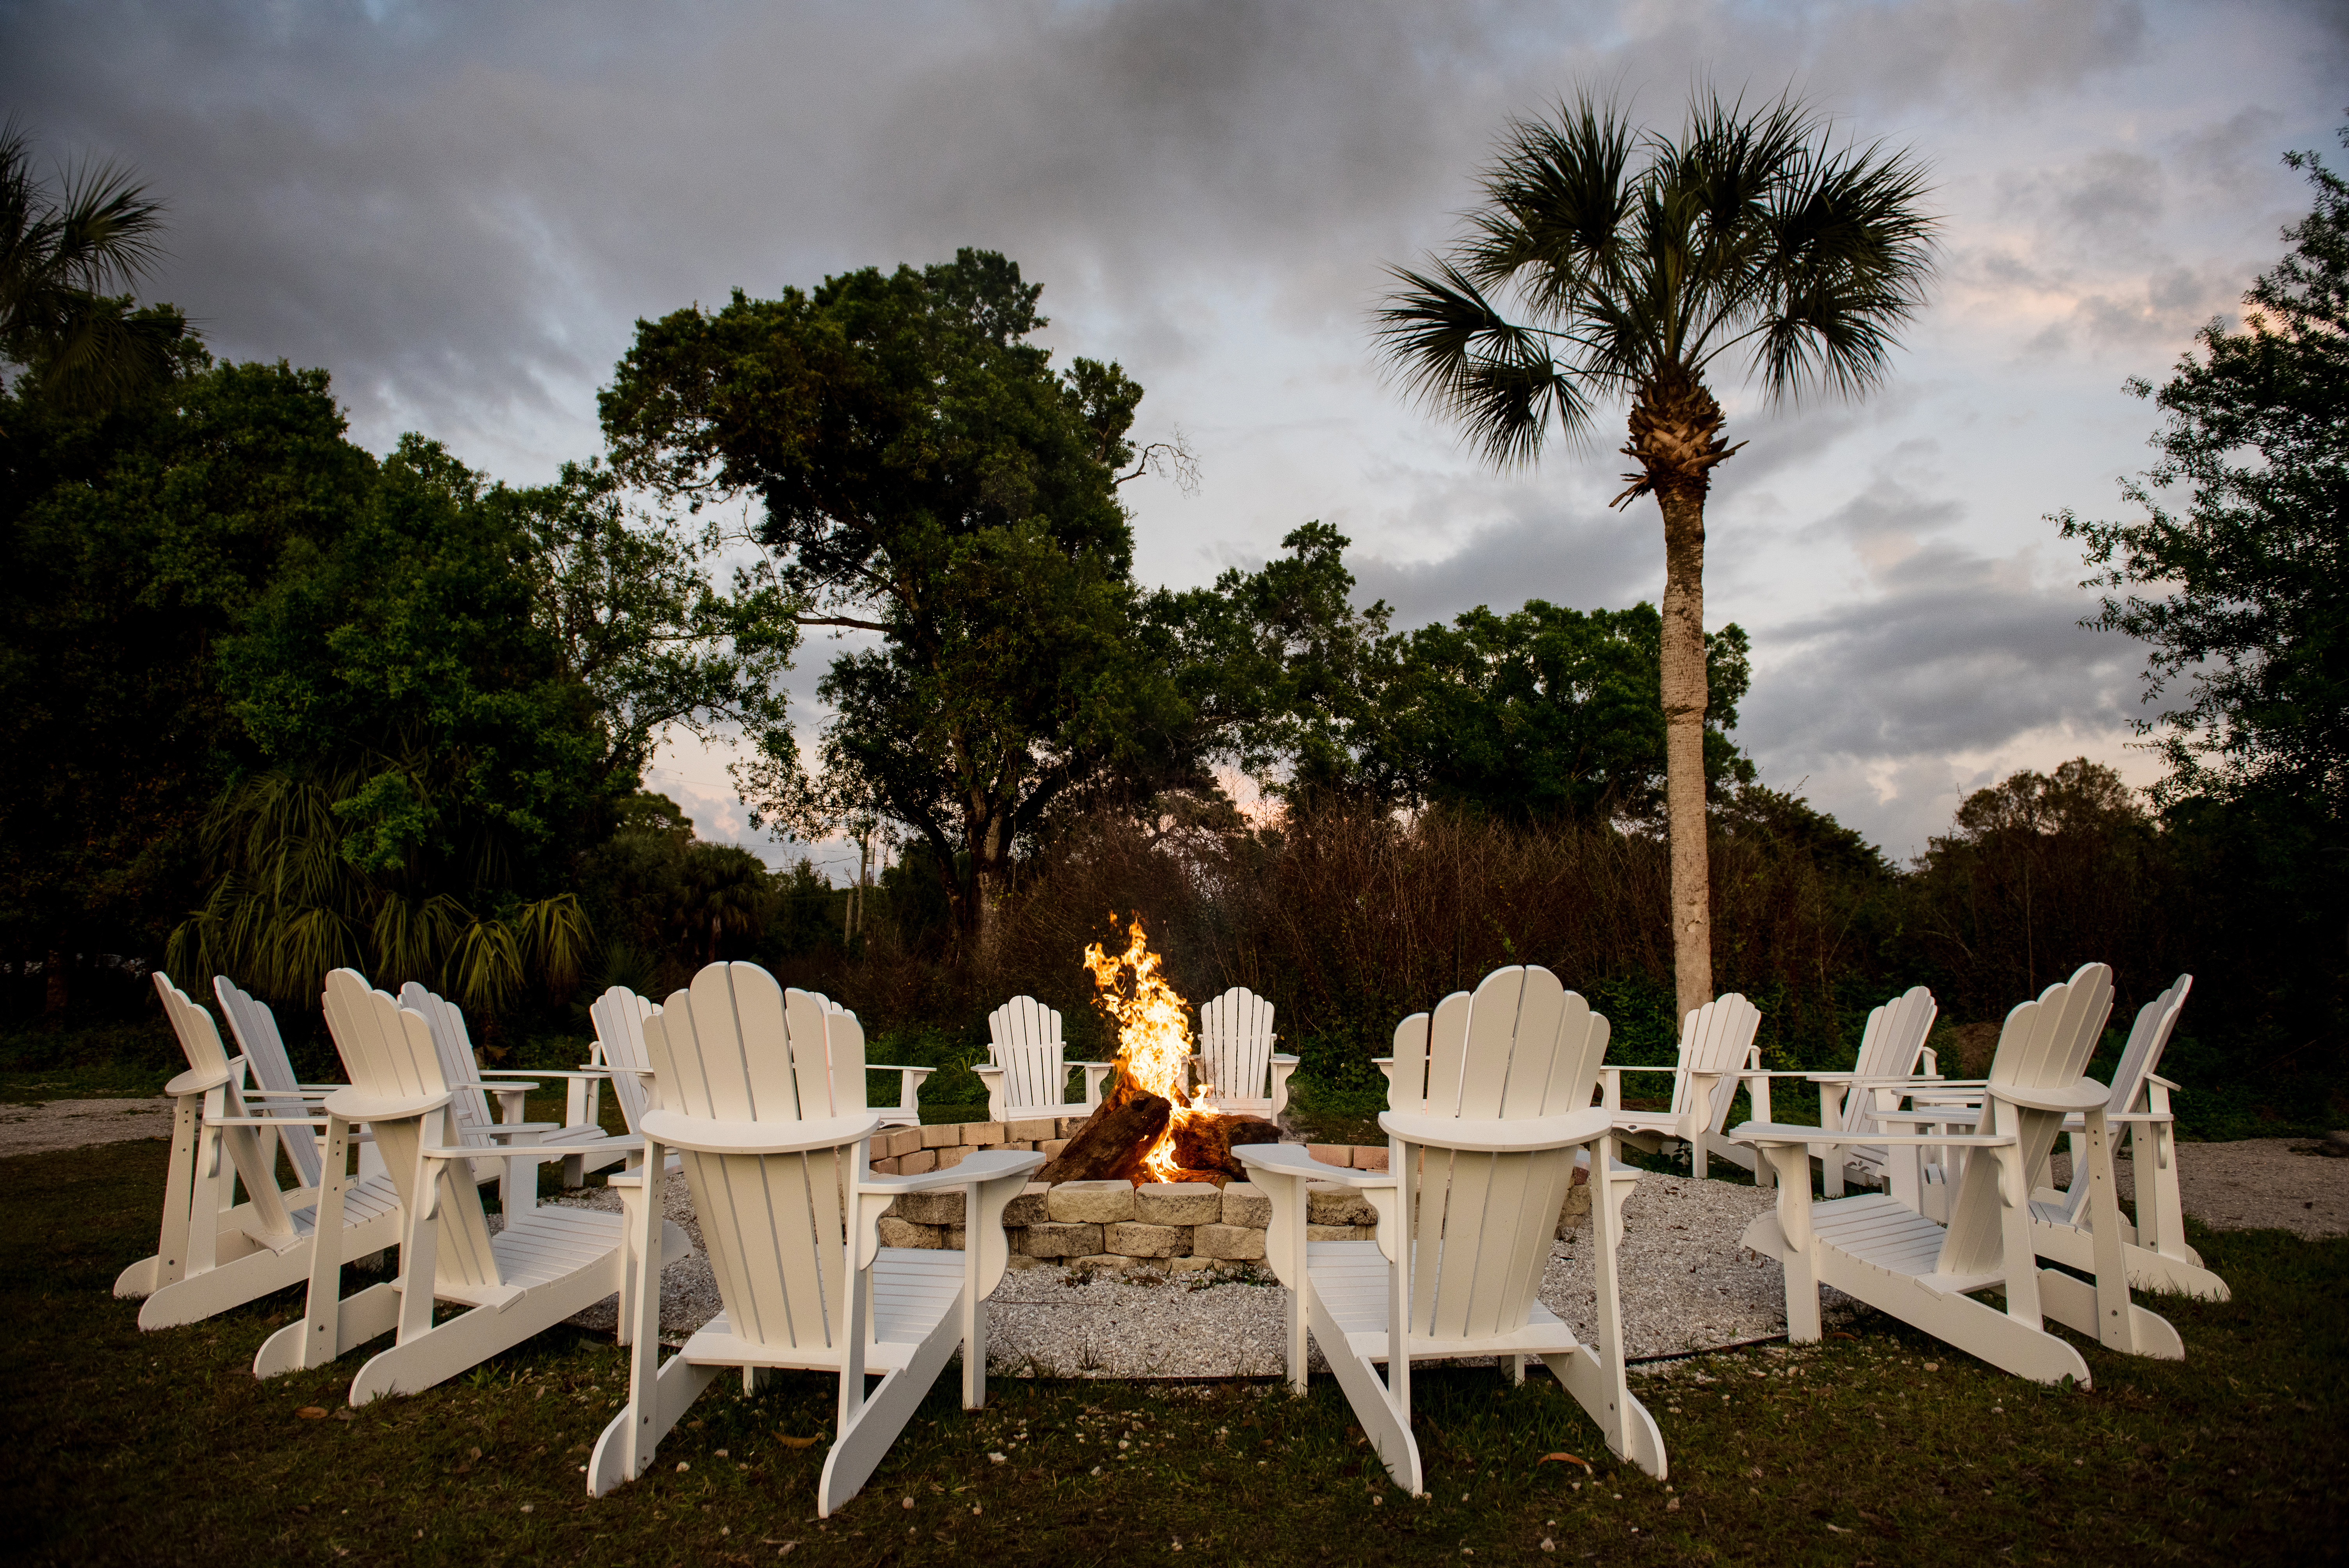 Grab a seat at our fire pit for some great stories.